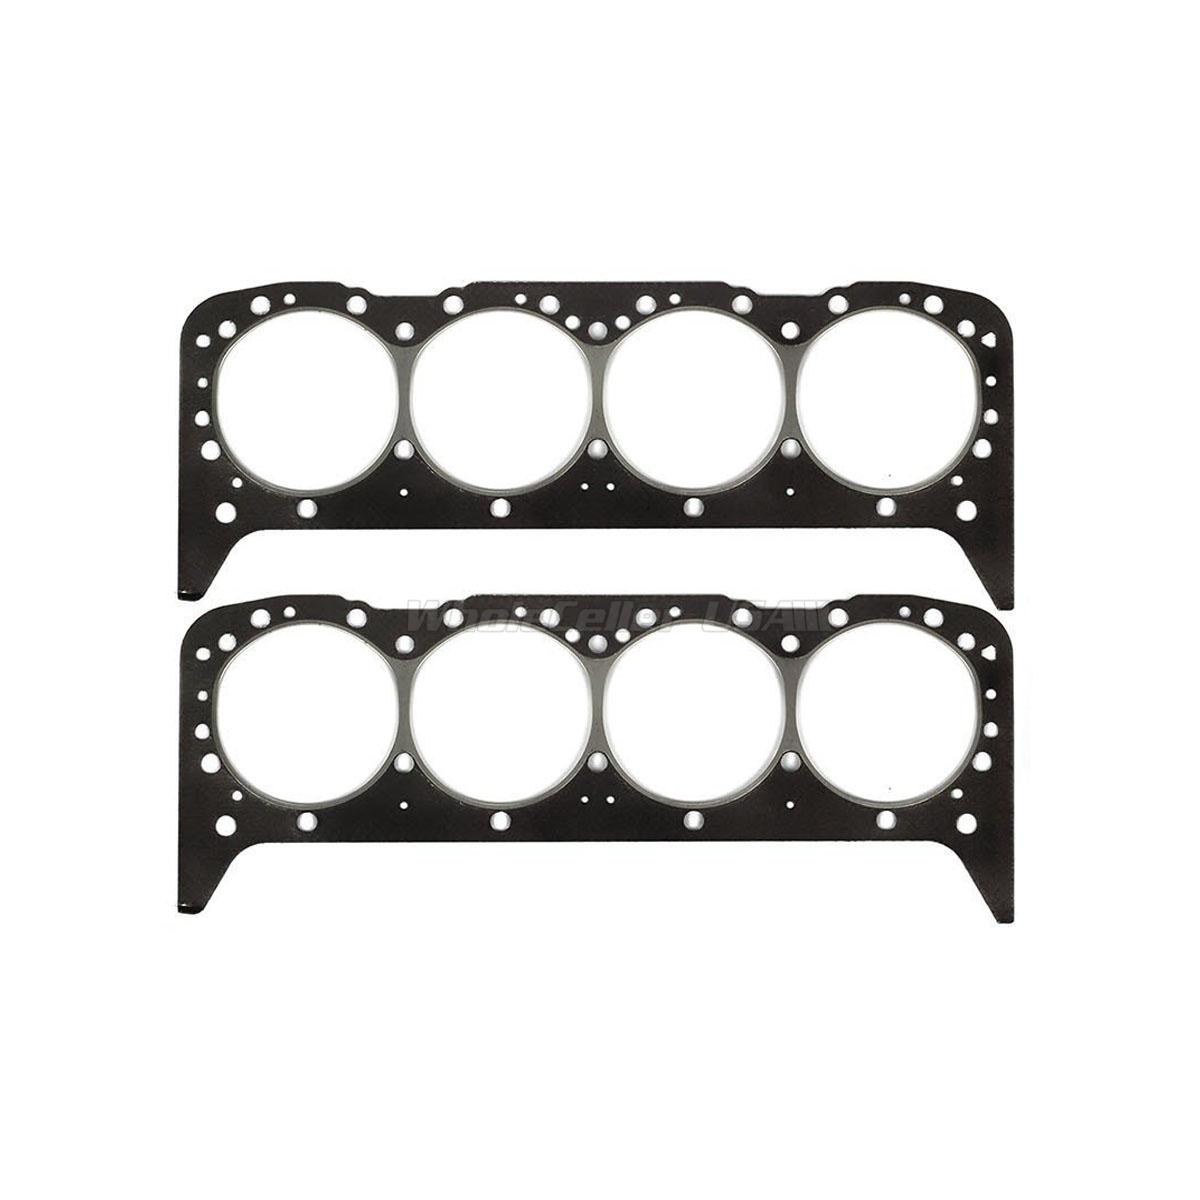 Vincos For 55 79 Small Block Chevy Engine Overhaul Gasket